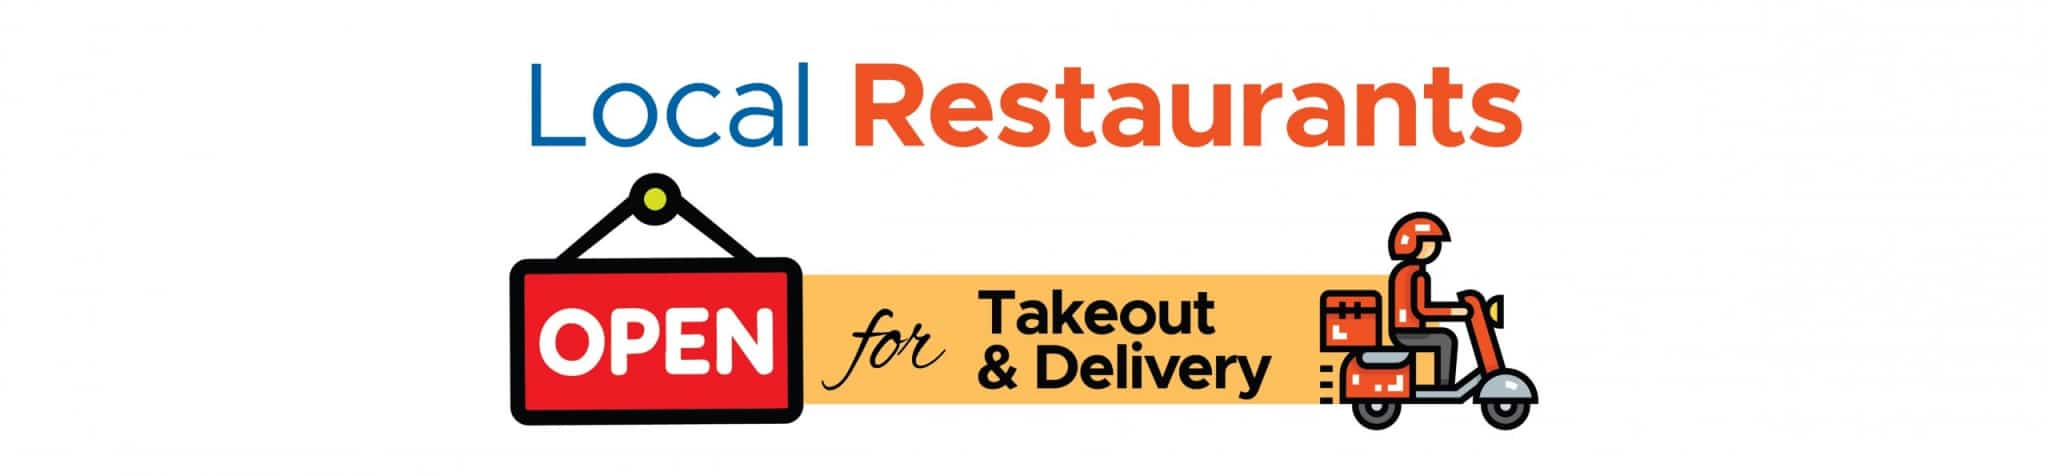 Directory of Local Restaurants in Cupertino